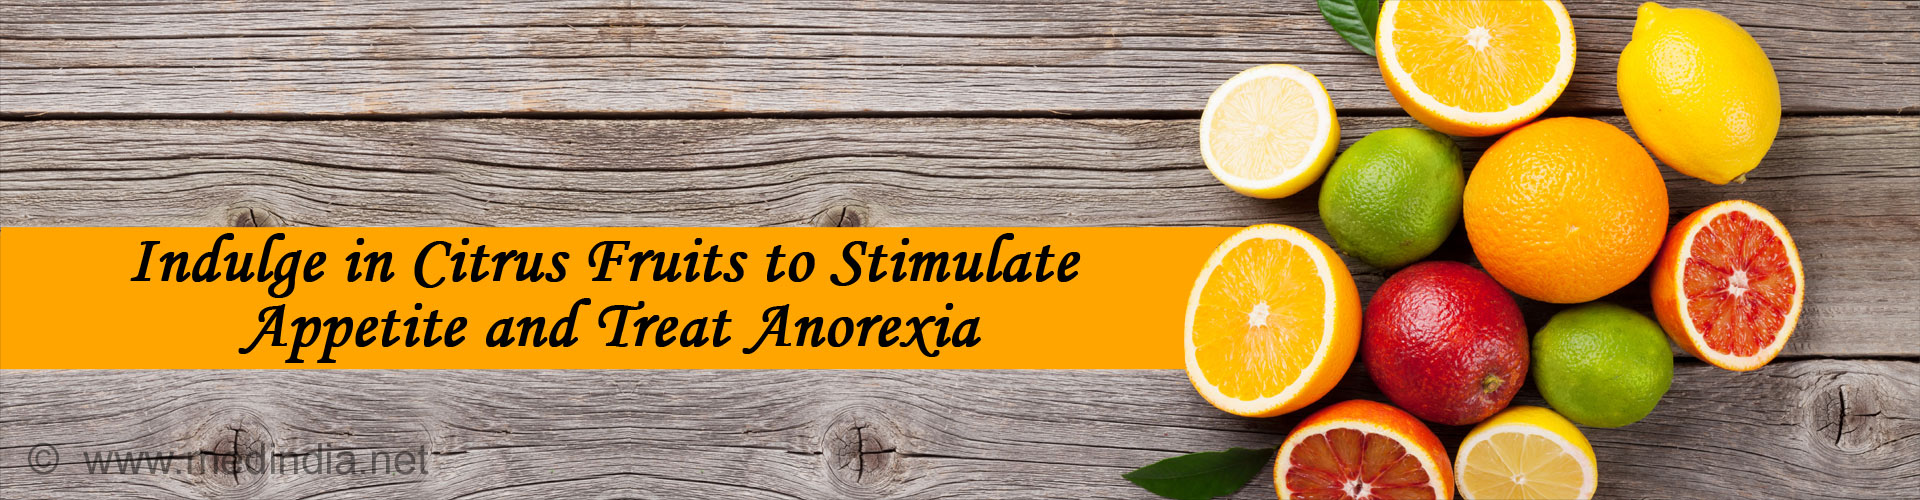 Health Tip to Treat Anorexia